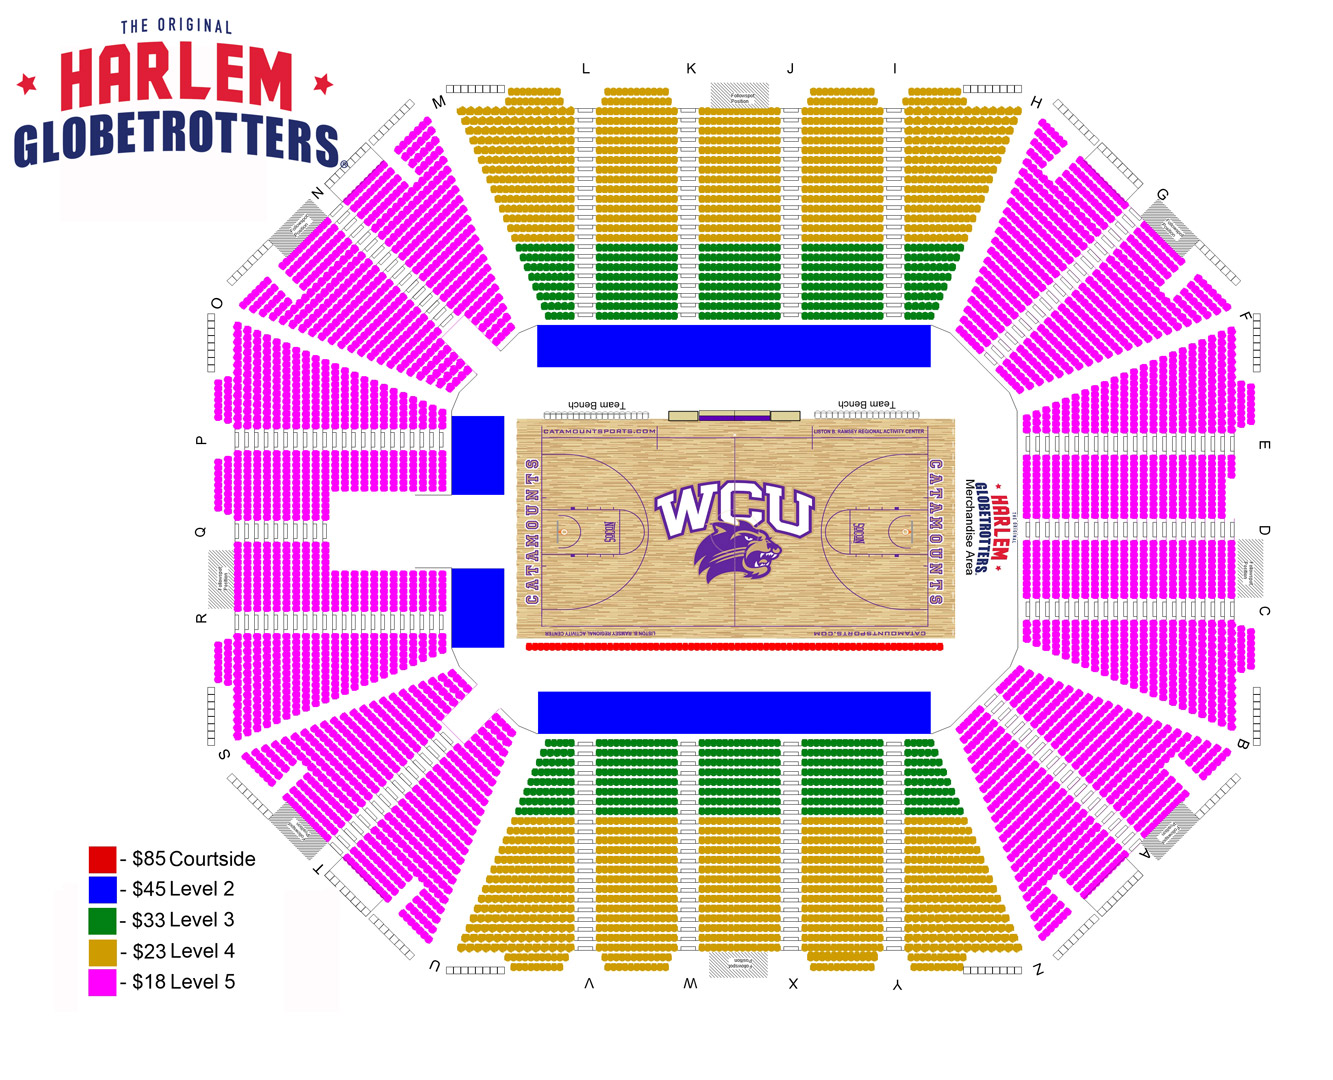 Globetrotters Seating Chart